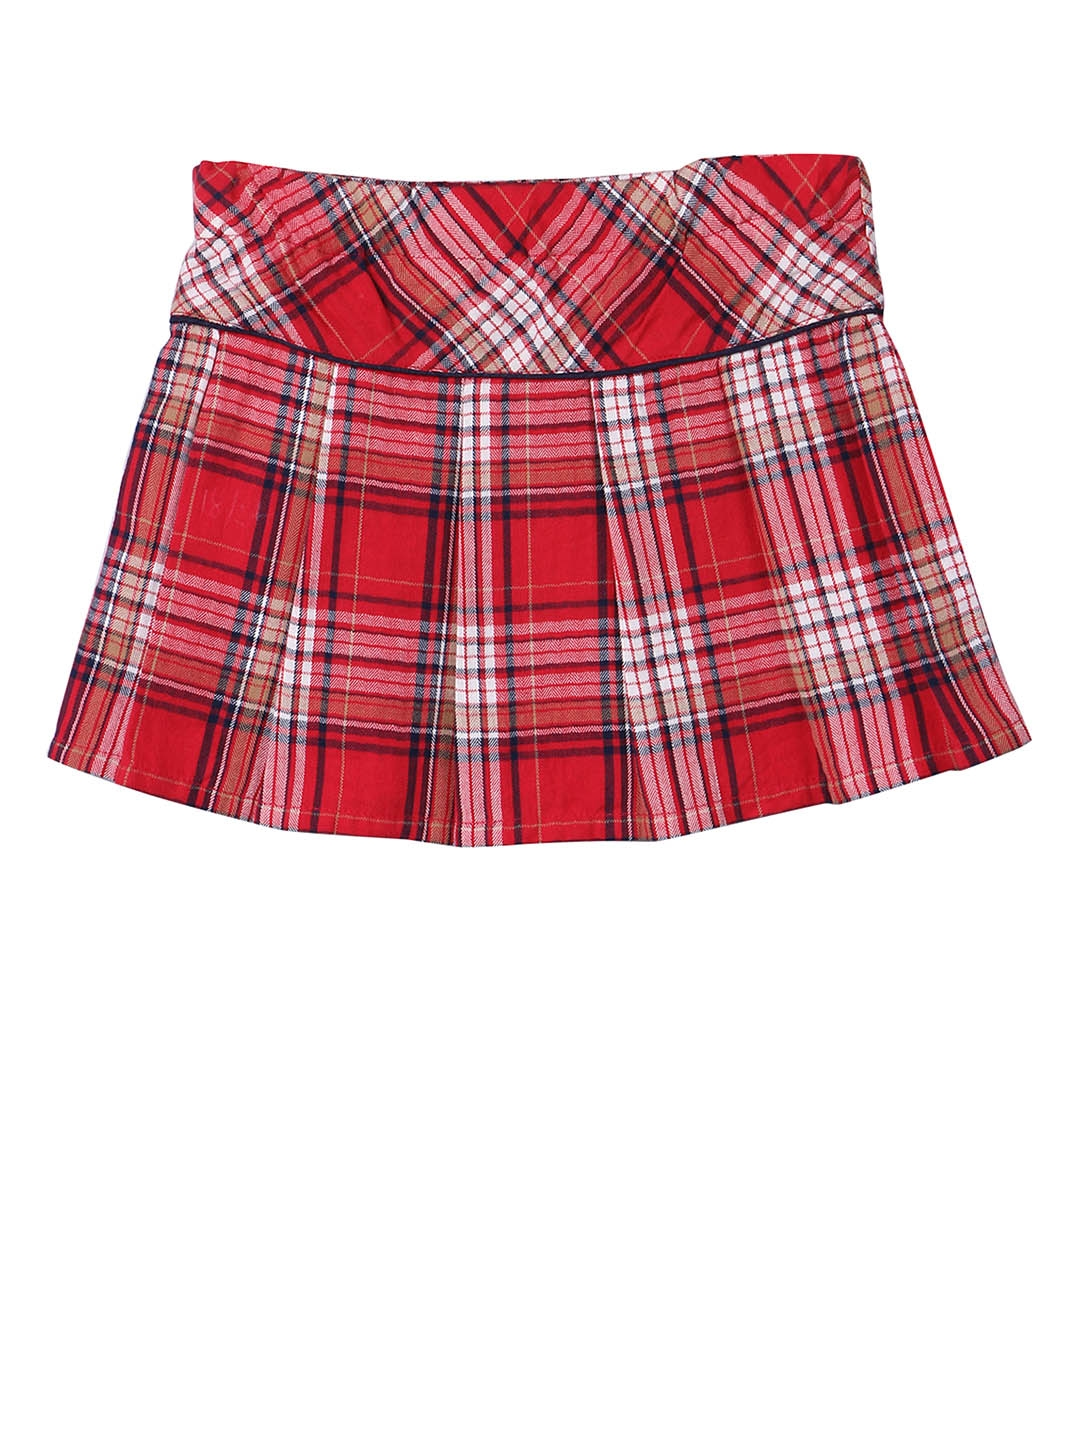 8623bf1219 Buy Beebay Girls Red & White Checked A Line Skirt - Skirts for Girls ...